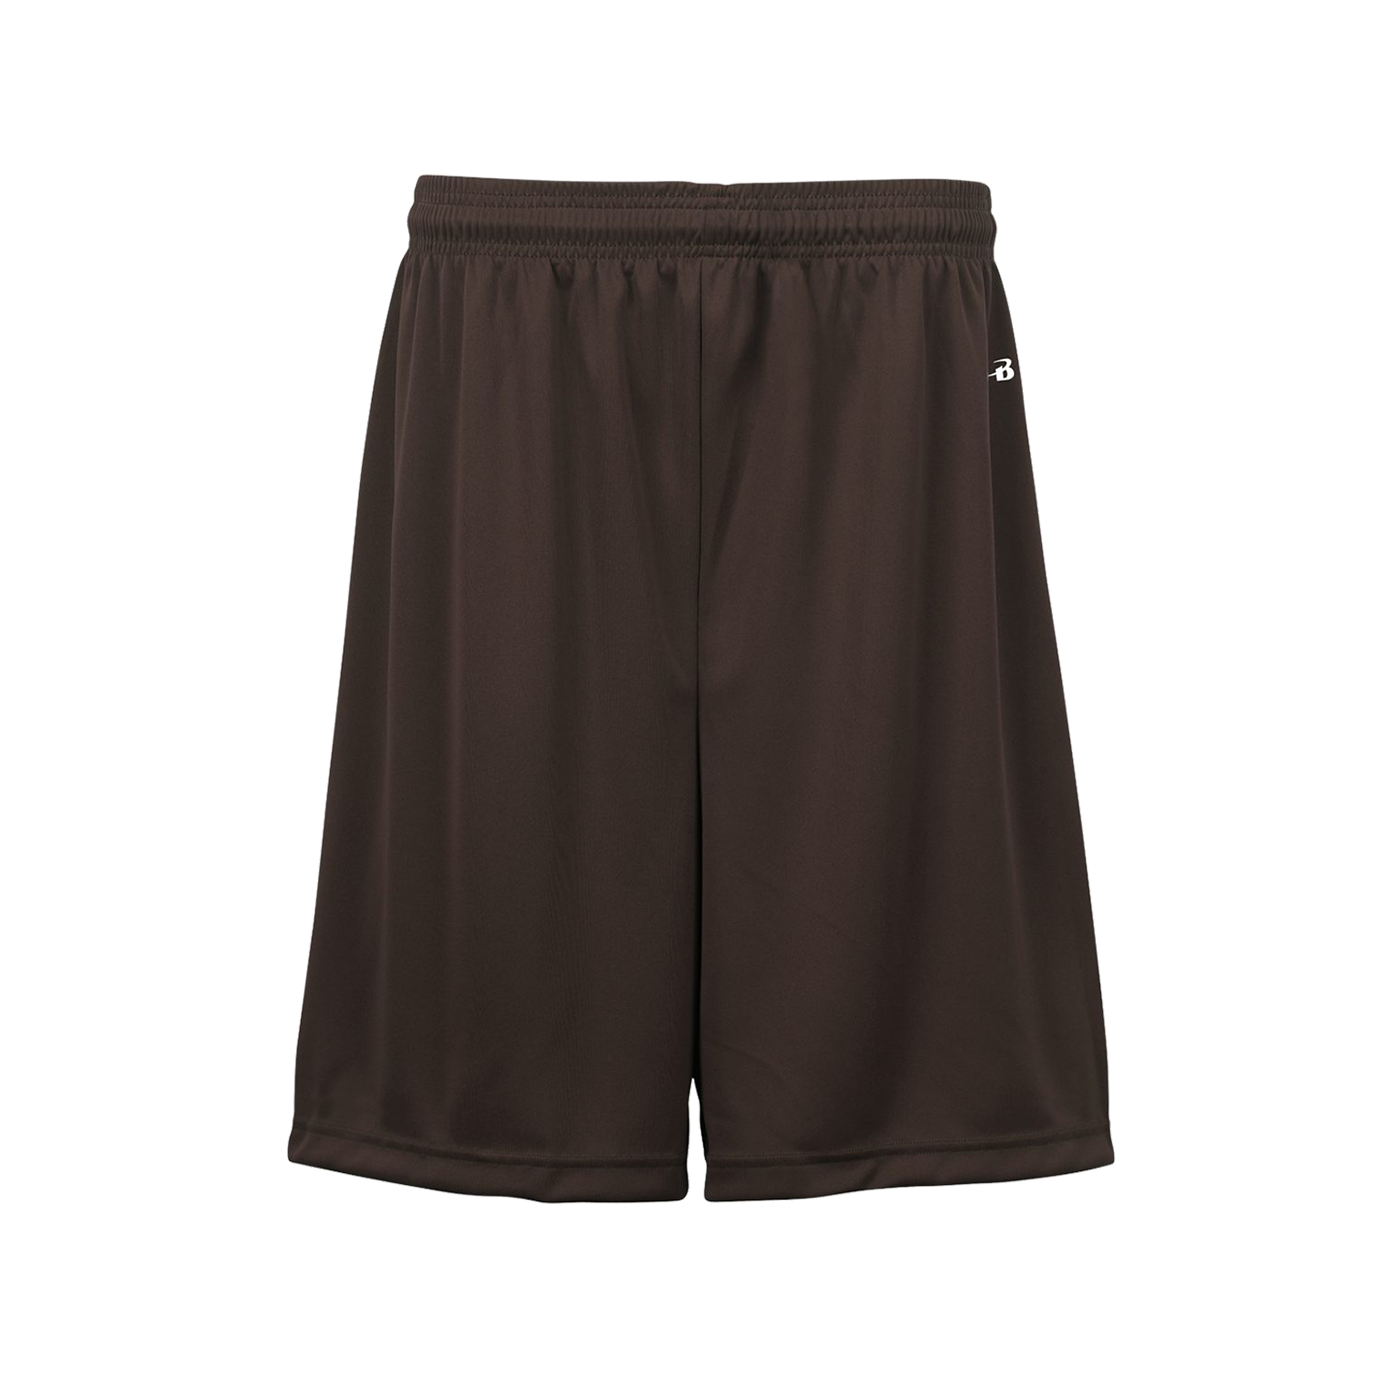 B-Core 6 Inch Youth Short - Brown